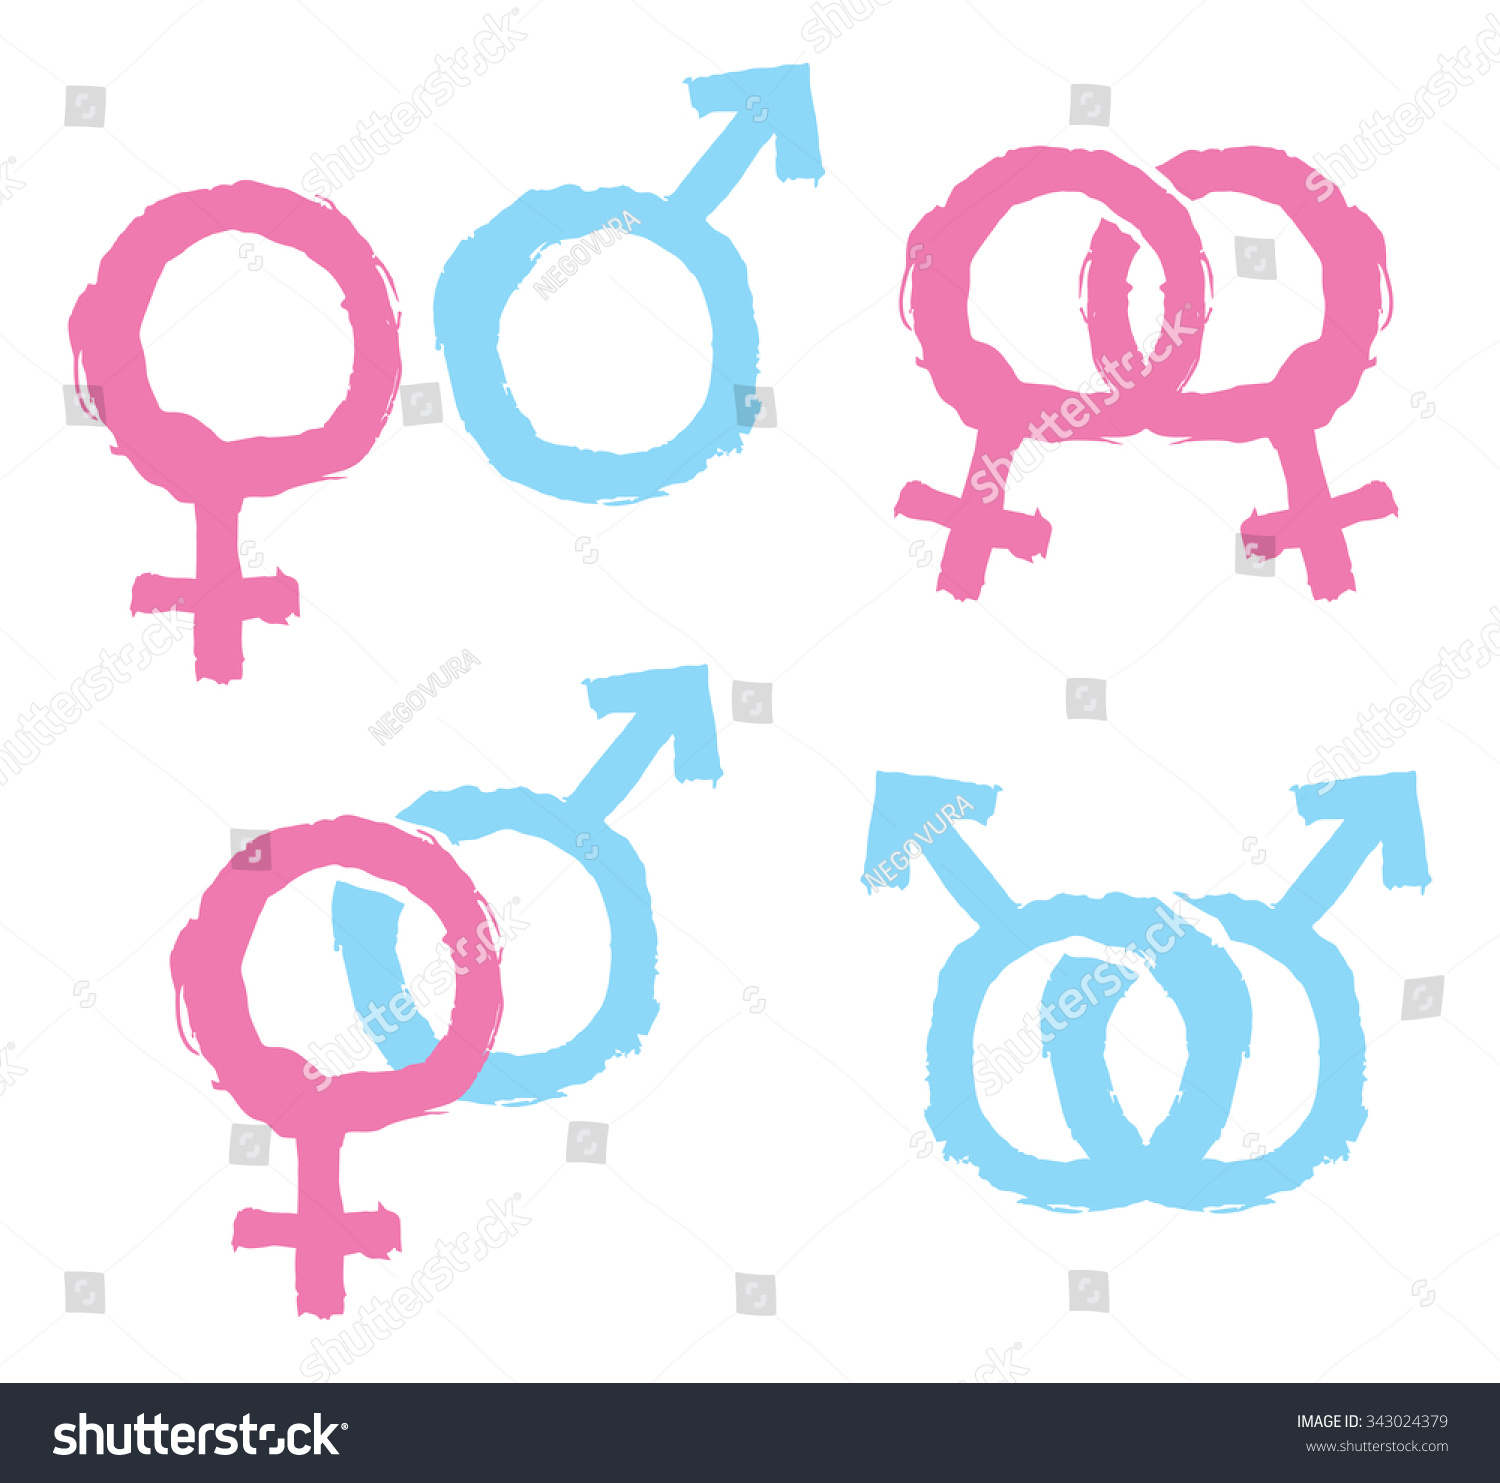 Male Female Gender Symbols Combination Stock Vector Royalty Free